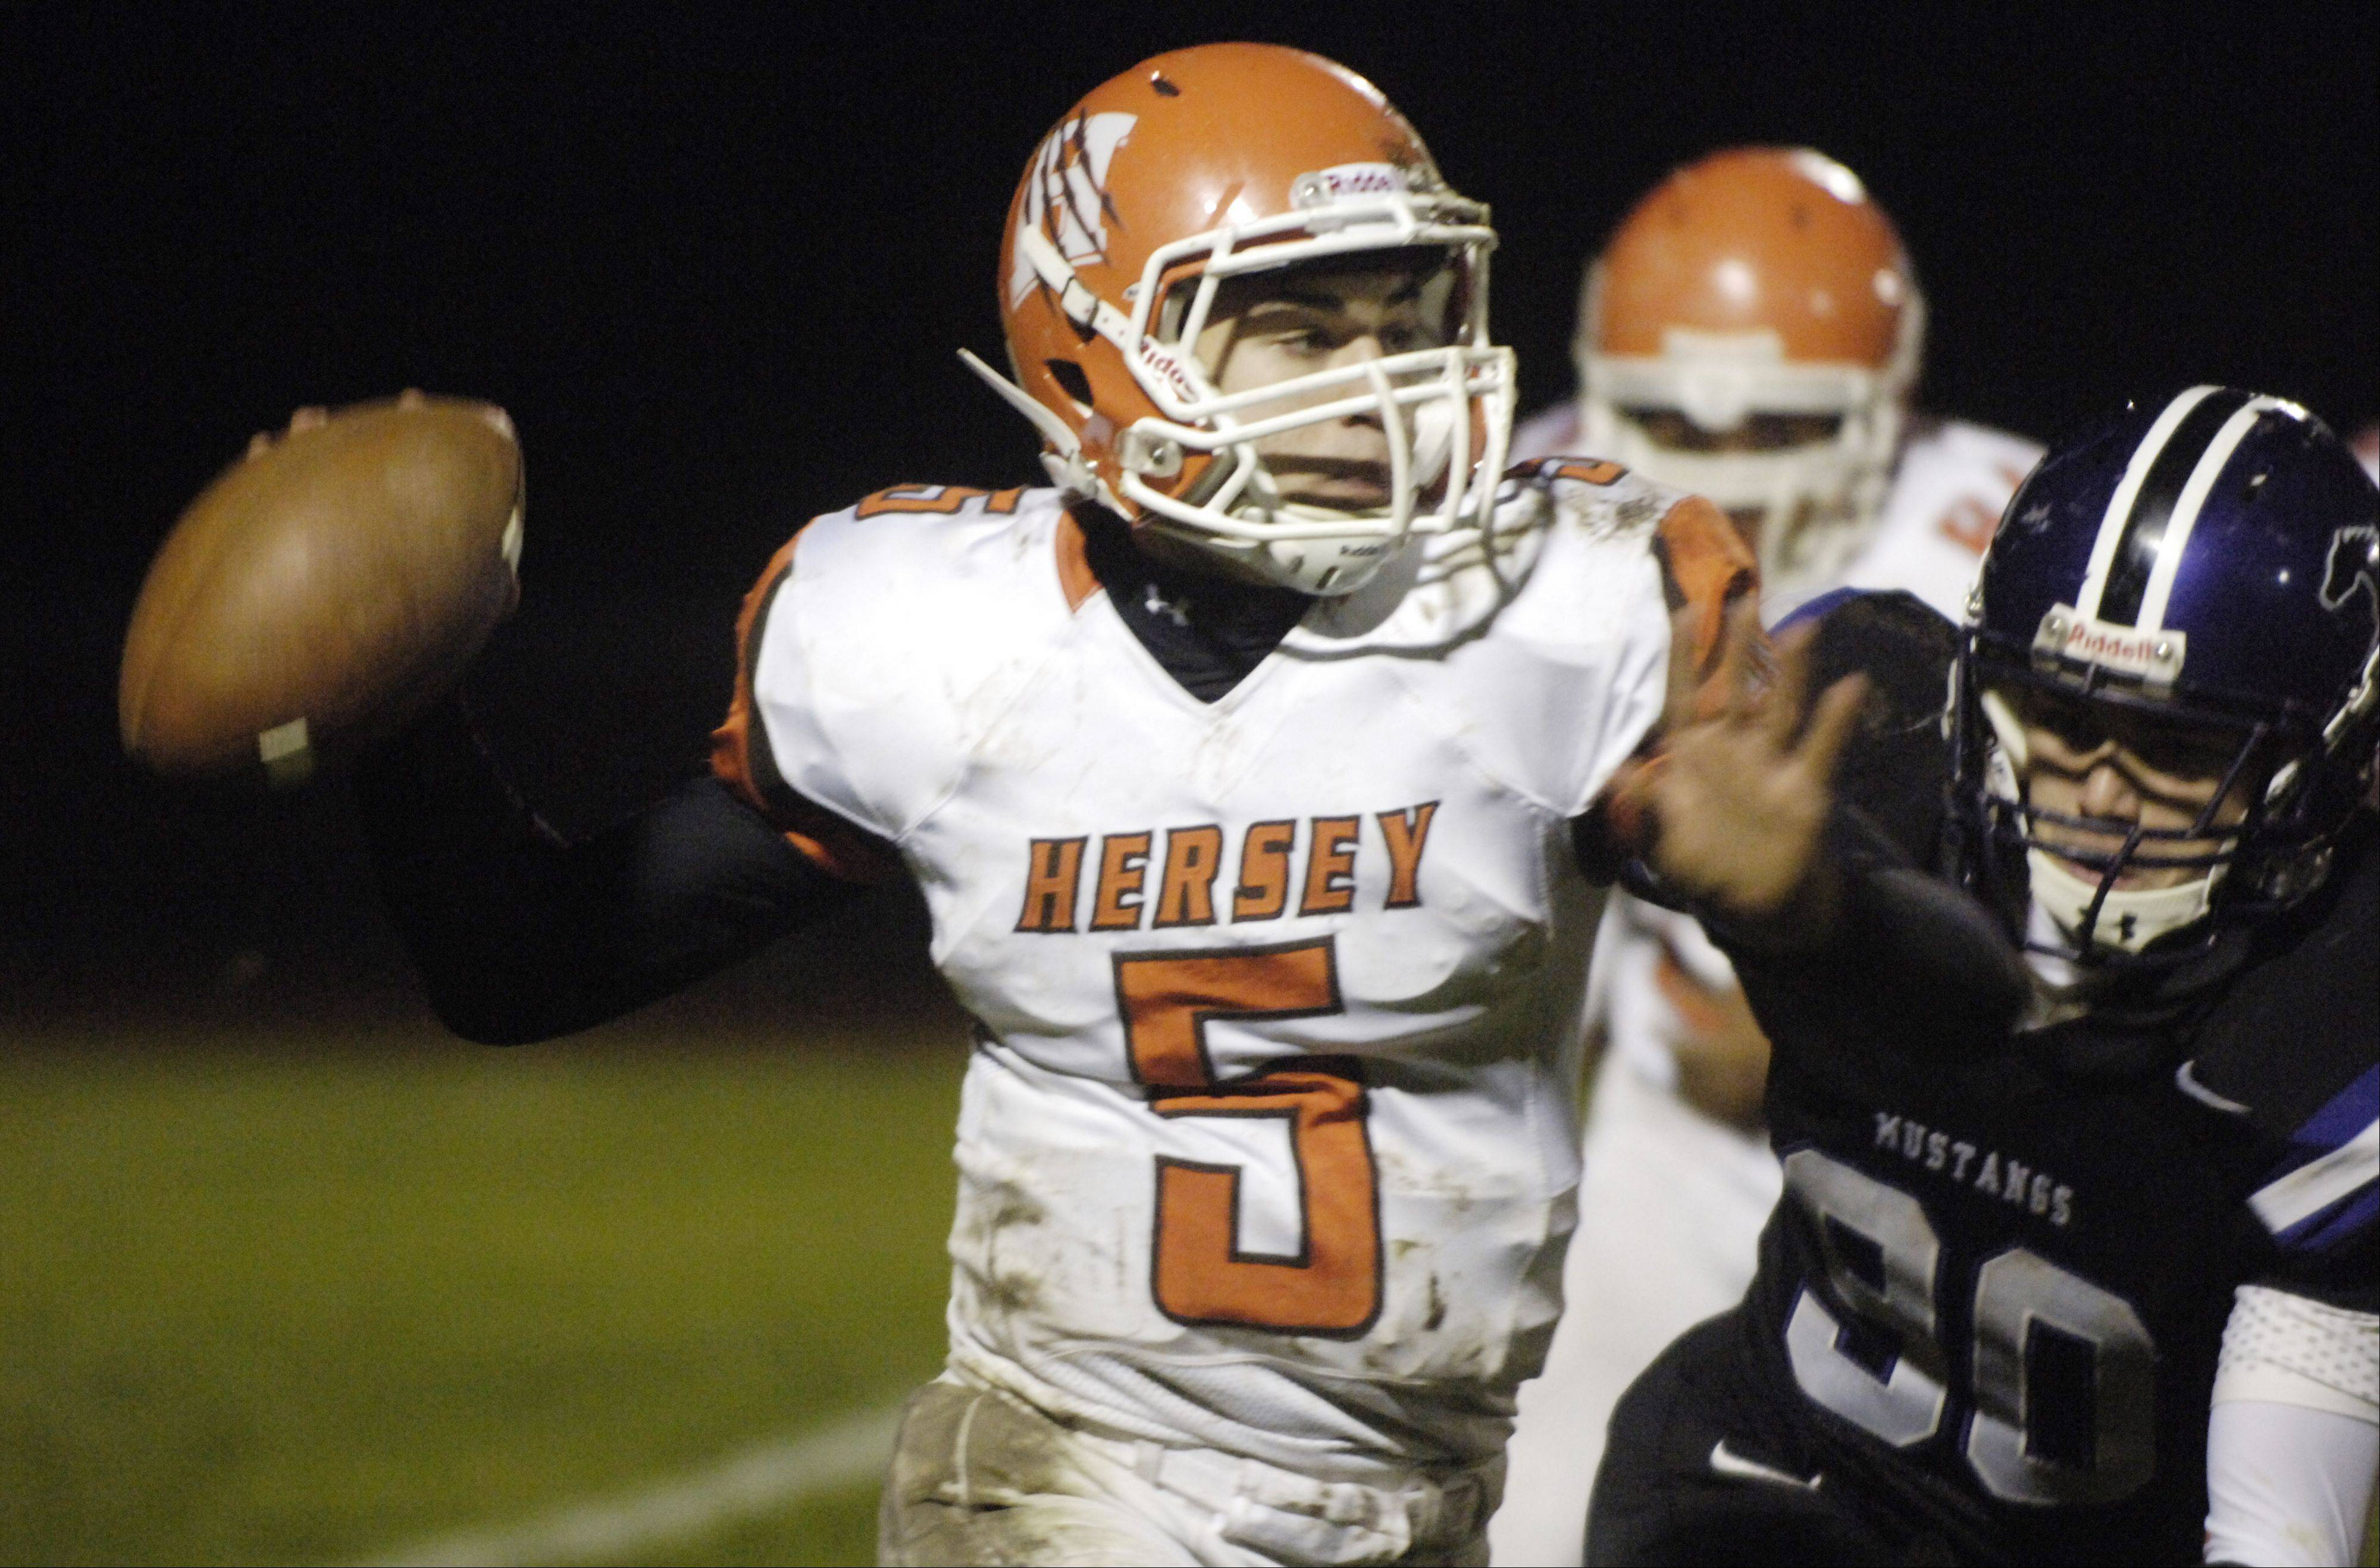 Week 9- Hersey quarterback Brad Zaucha throws a pass.